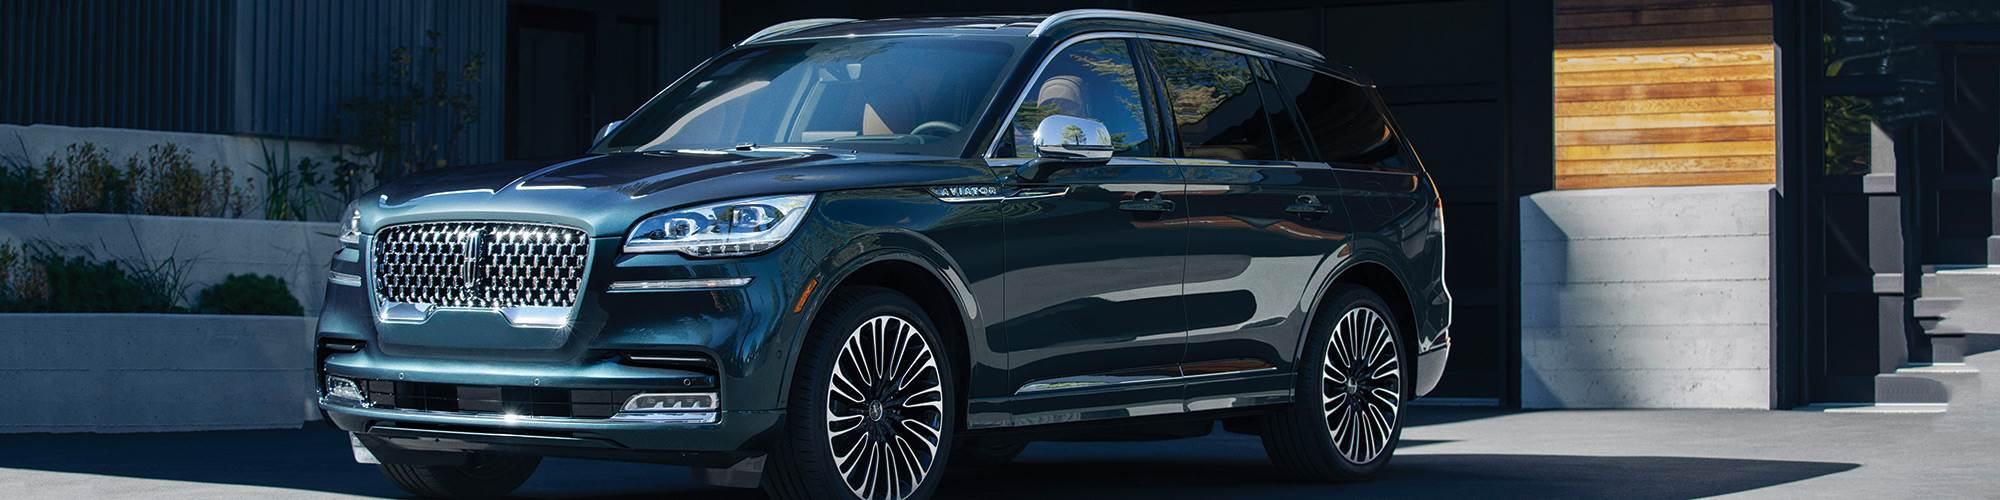 The 2020 Lincoln Aviator is based on a RWD platform, though it is available as AWD. It comes standard with a 400-hp twin-turbo 3.0-liter V6 or as a plug-in hybrid that uses the same engine and supplements it with an electric drive motor to provide 494 systems horsepower.